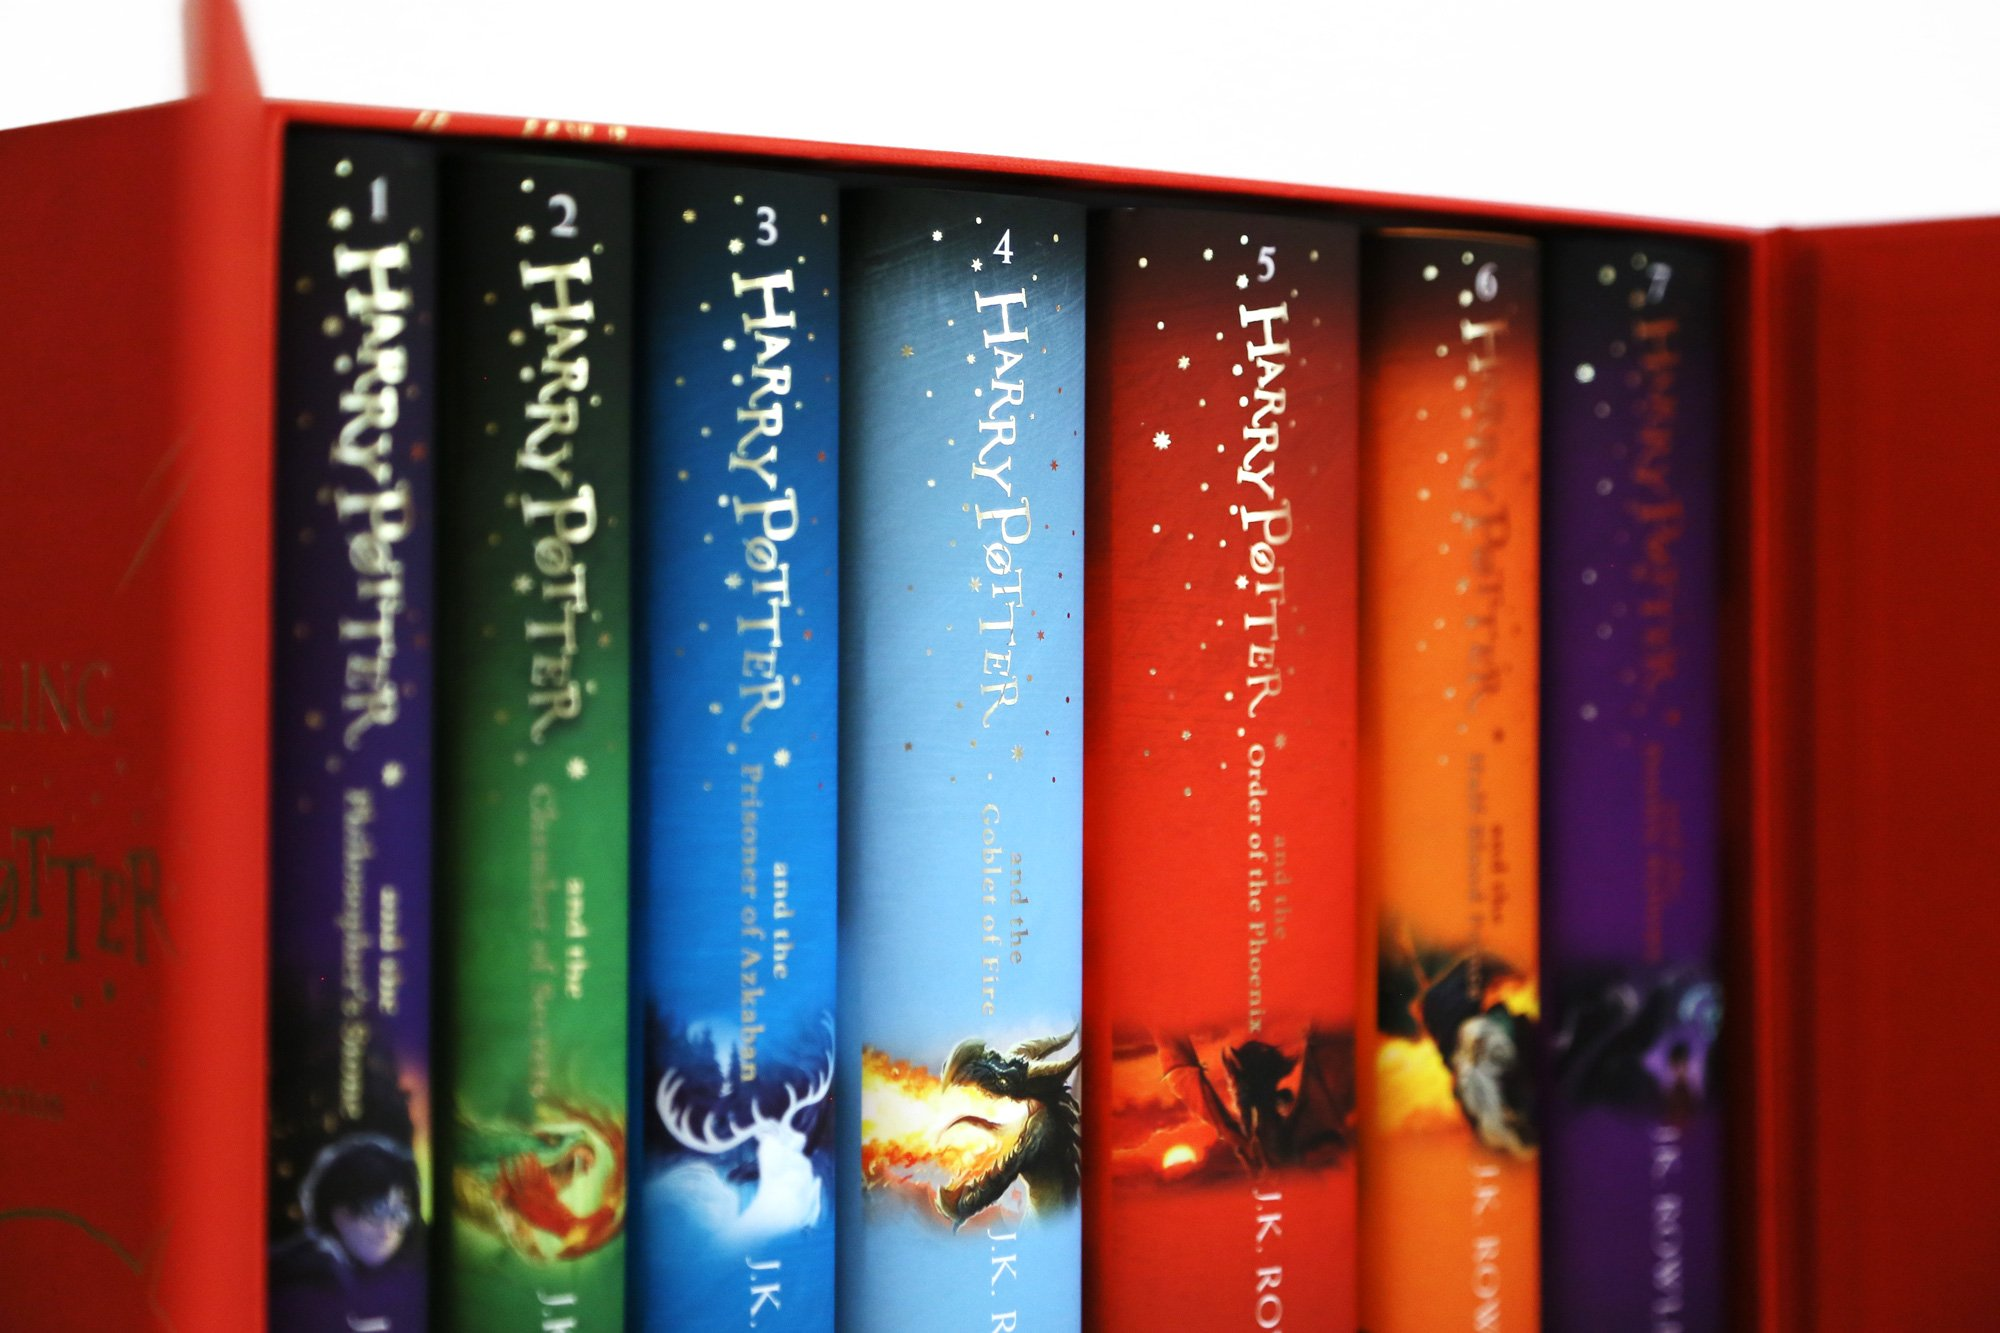 Pack Harry Potter - The Complete Collection: Amazon.es: Rowling ...